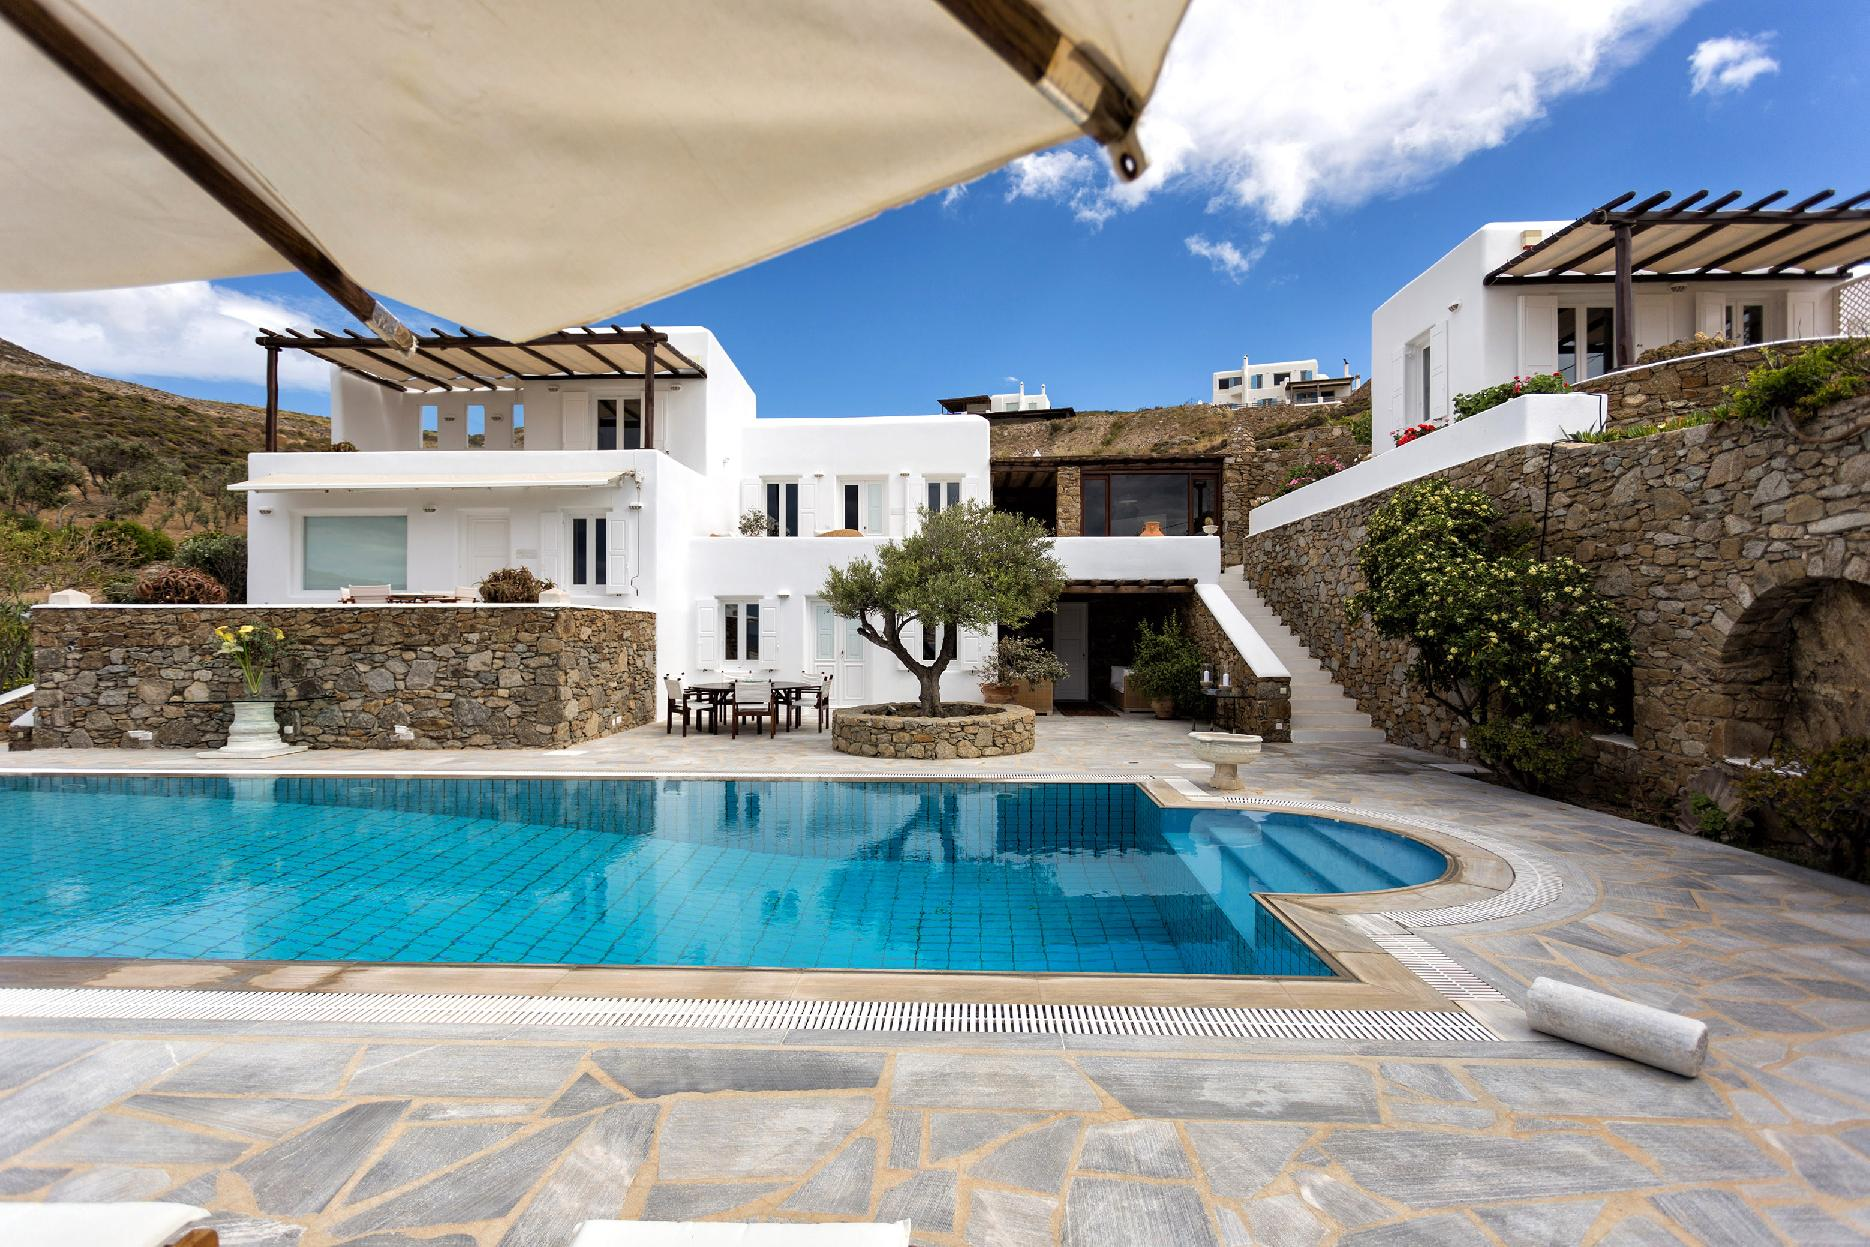 Apartment The Galaxy Mykonos villa with large pool and yoga platform photo 6005334